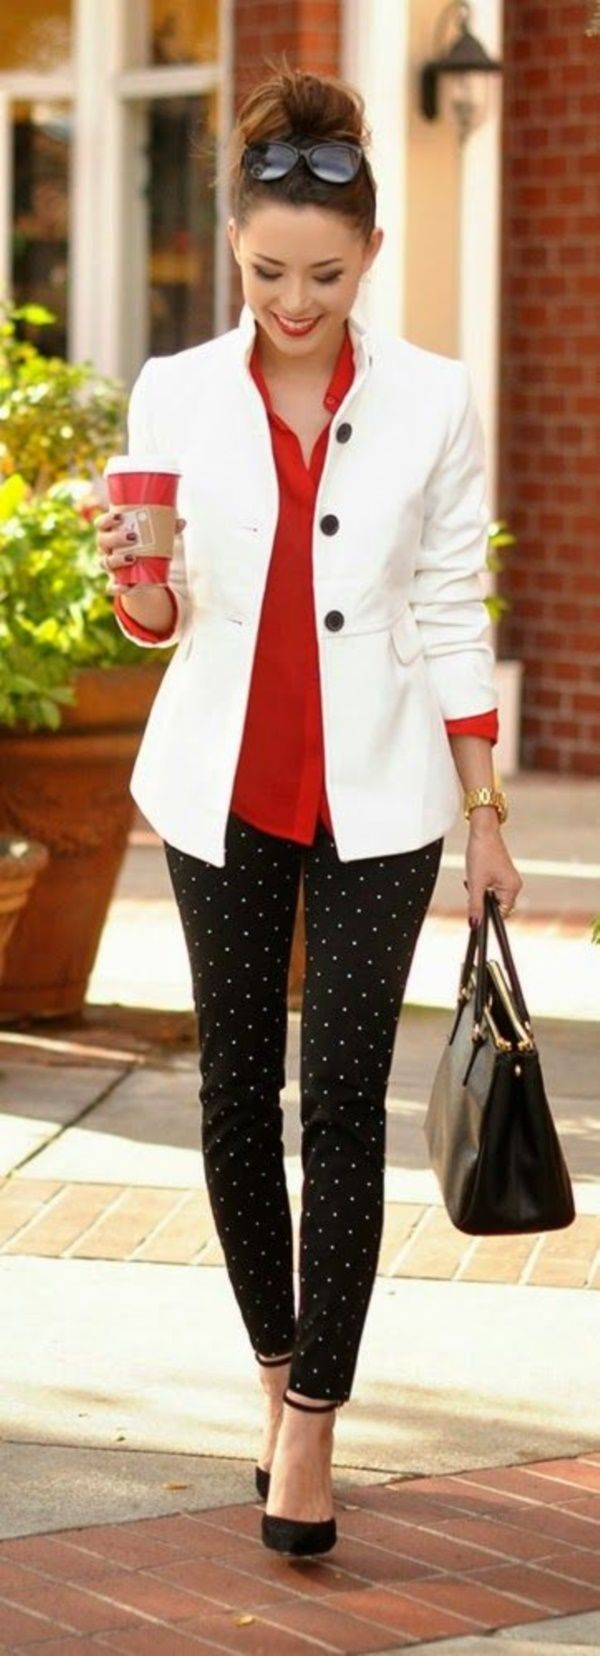 White t shirt fashion tips - 40 Perfect Blazer Outfits To Try This Winter